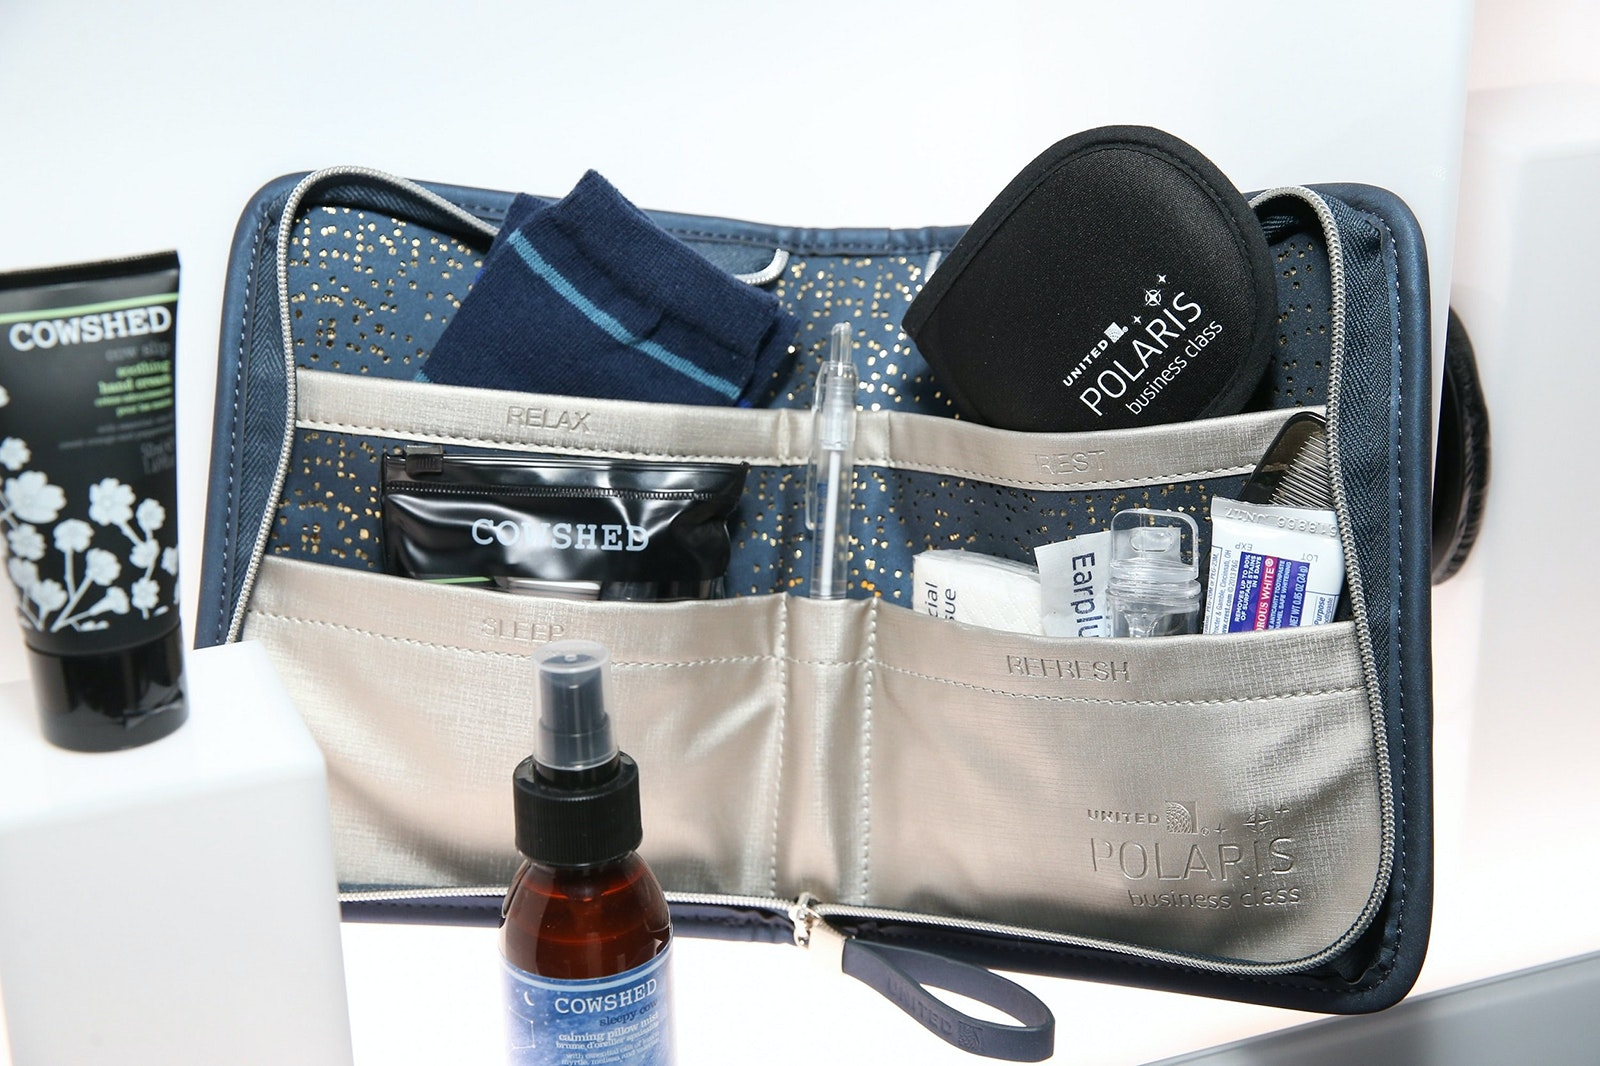 United's first-class amenity kit